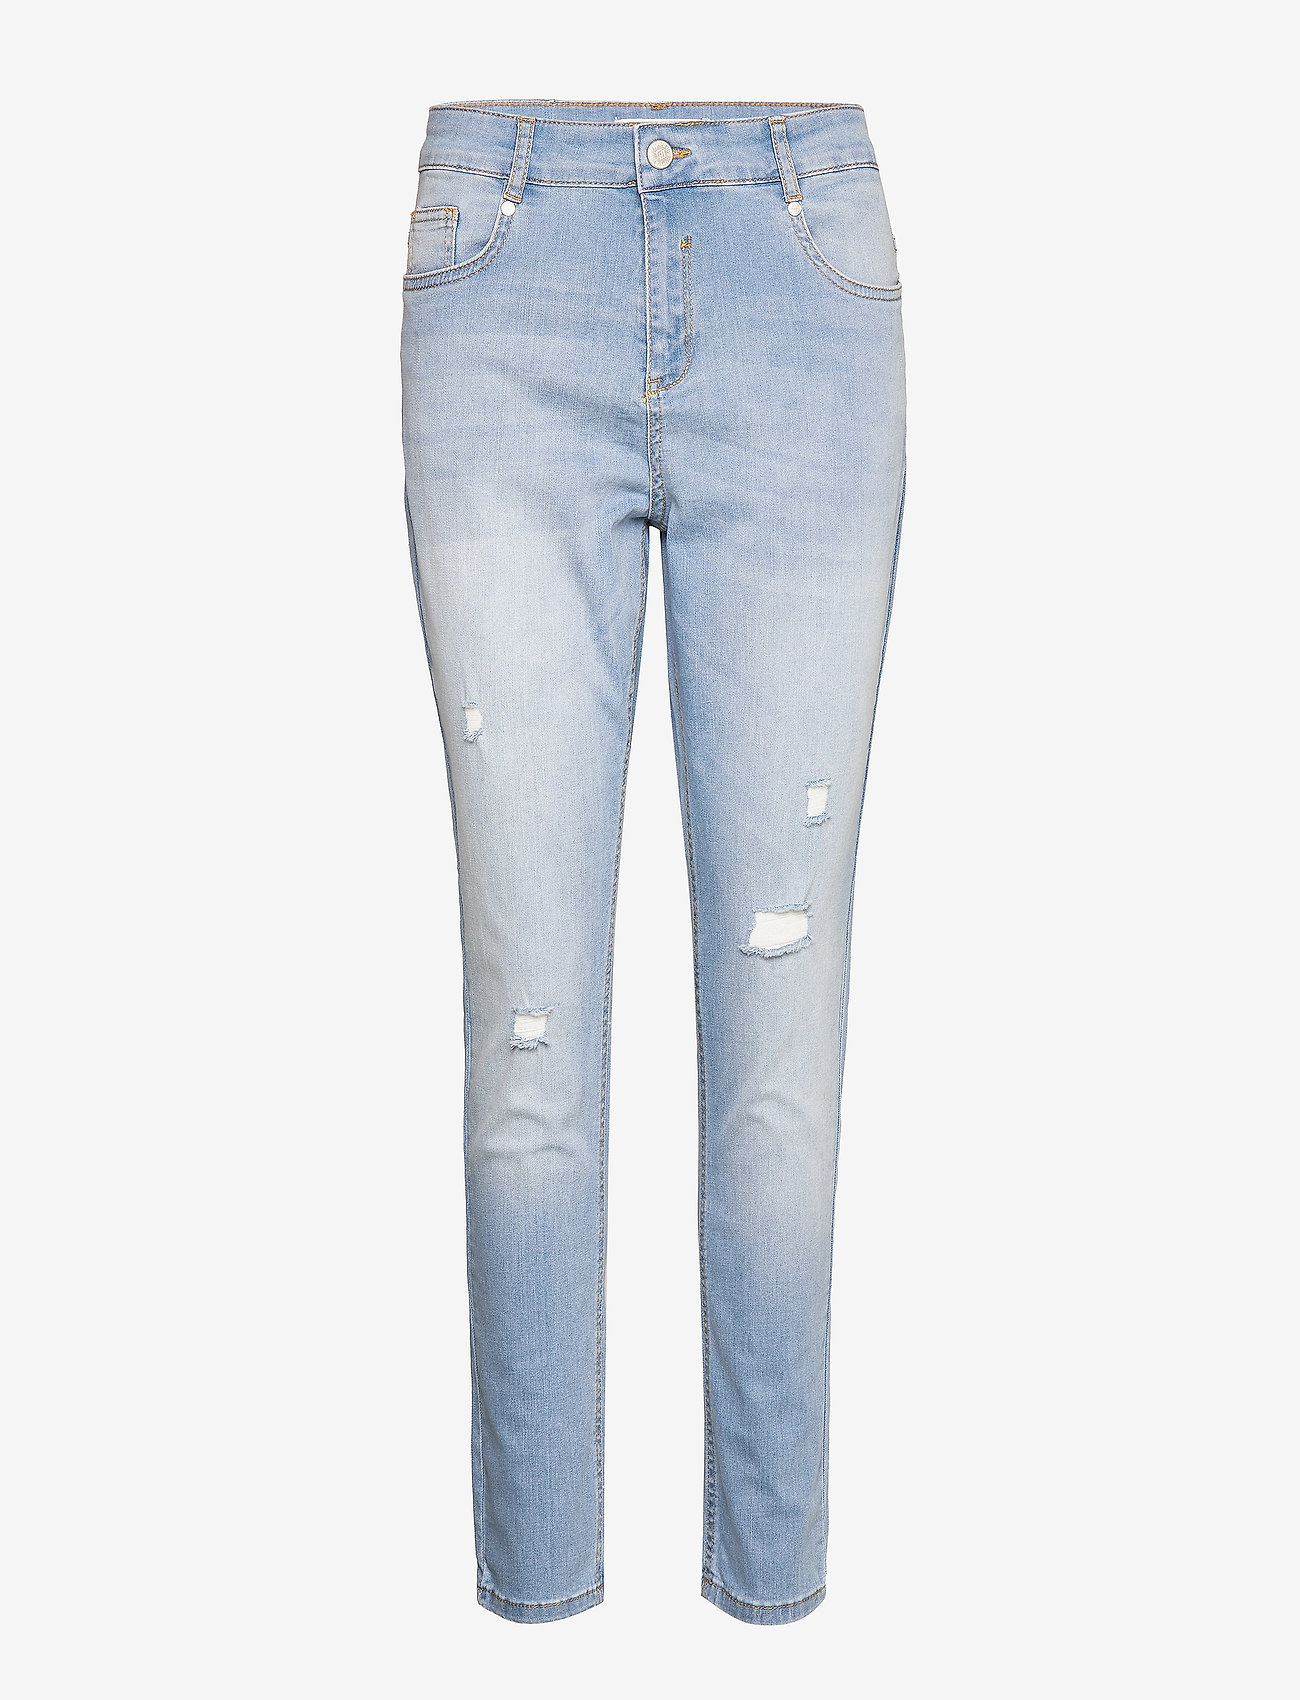 Soft Rebels - Cassy Boyfriend Pant - dżinsy chłopaka - light wash - 0